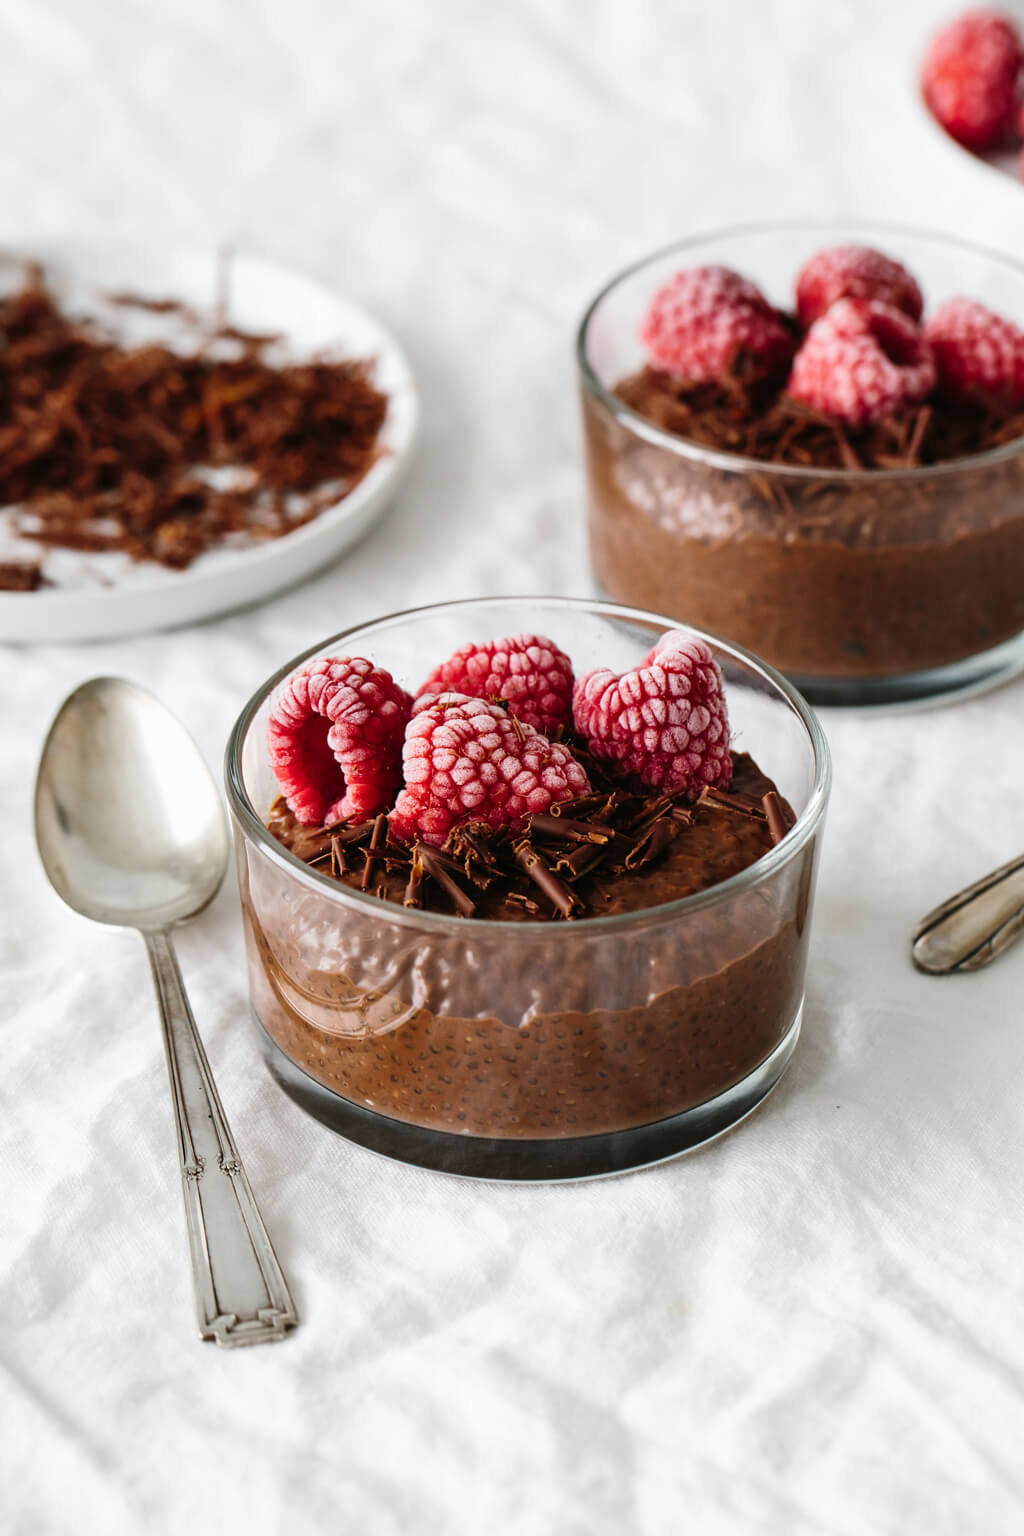 Chocolate chia pudding in a dessert glass with frozen, frosted raspberries on top.